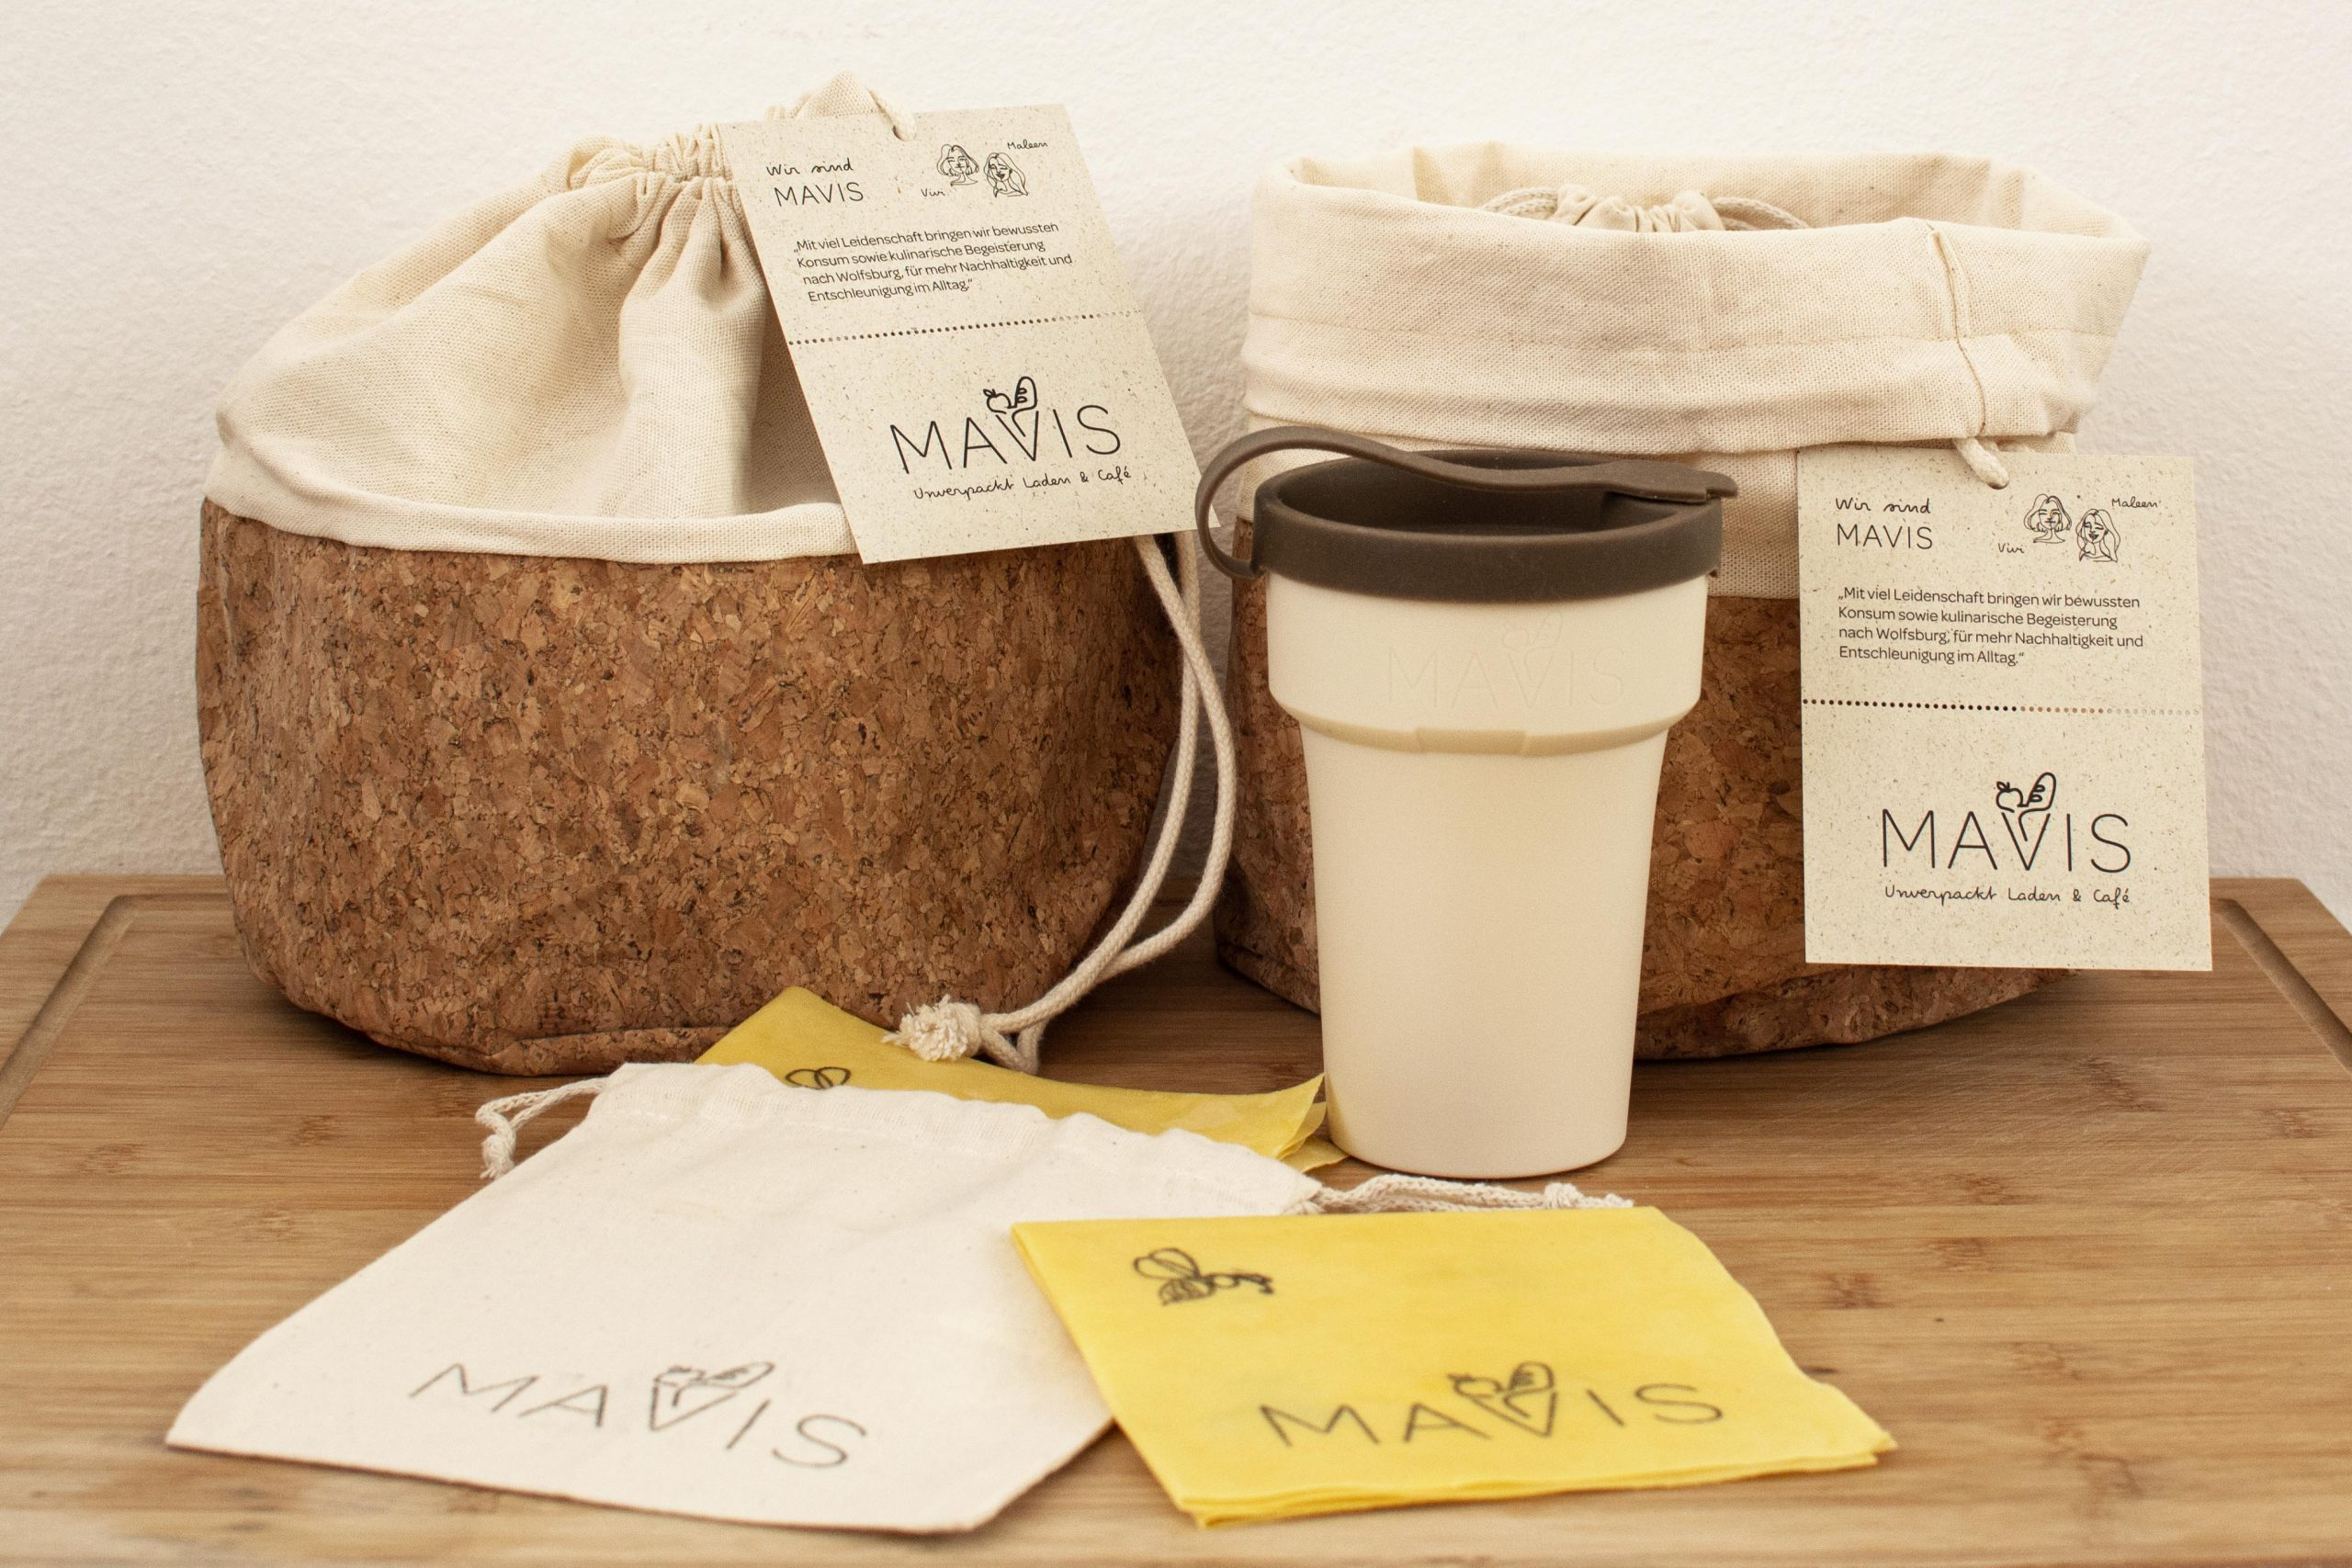 MAVIS – Unverpackt Laden & Café (PR-Paket & Corporate Design)